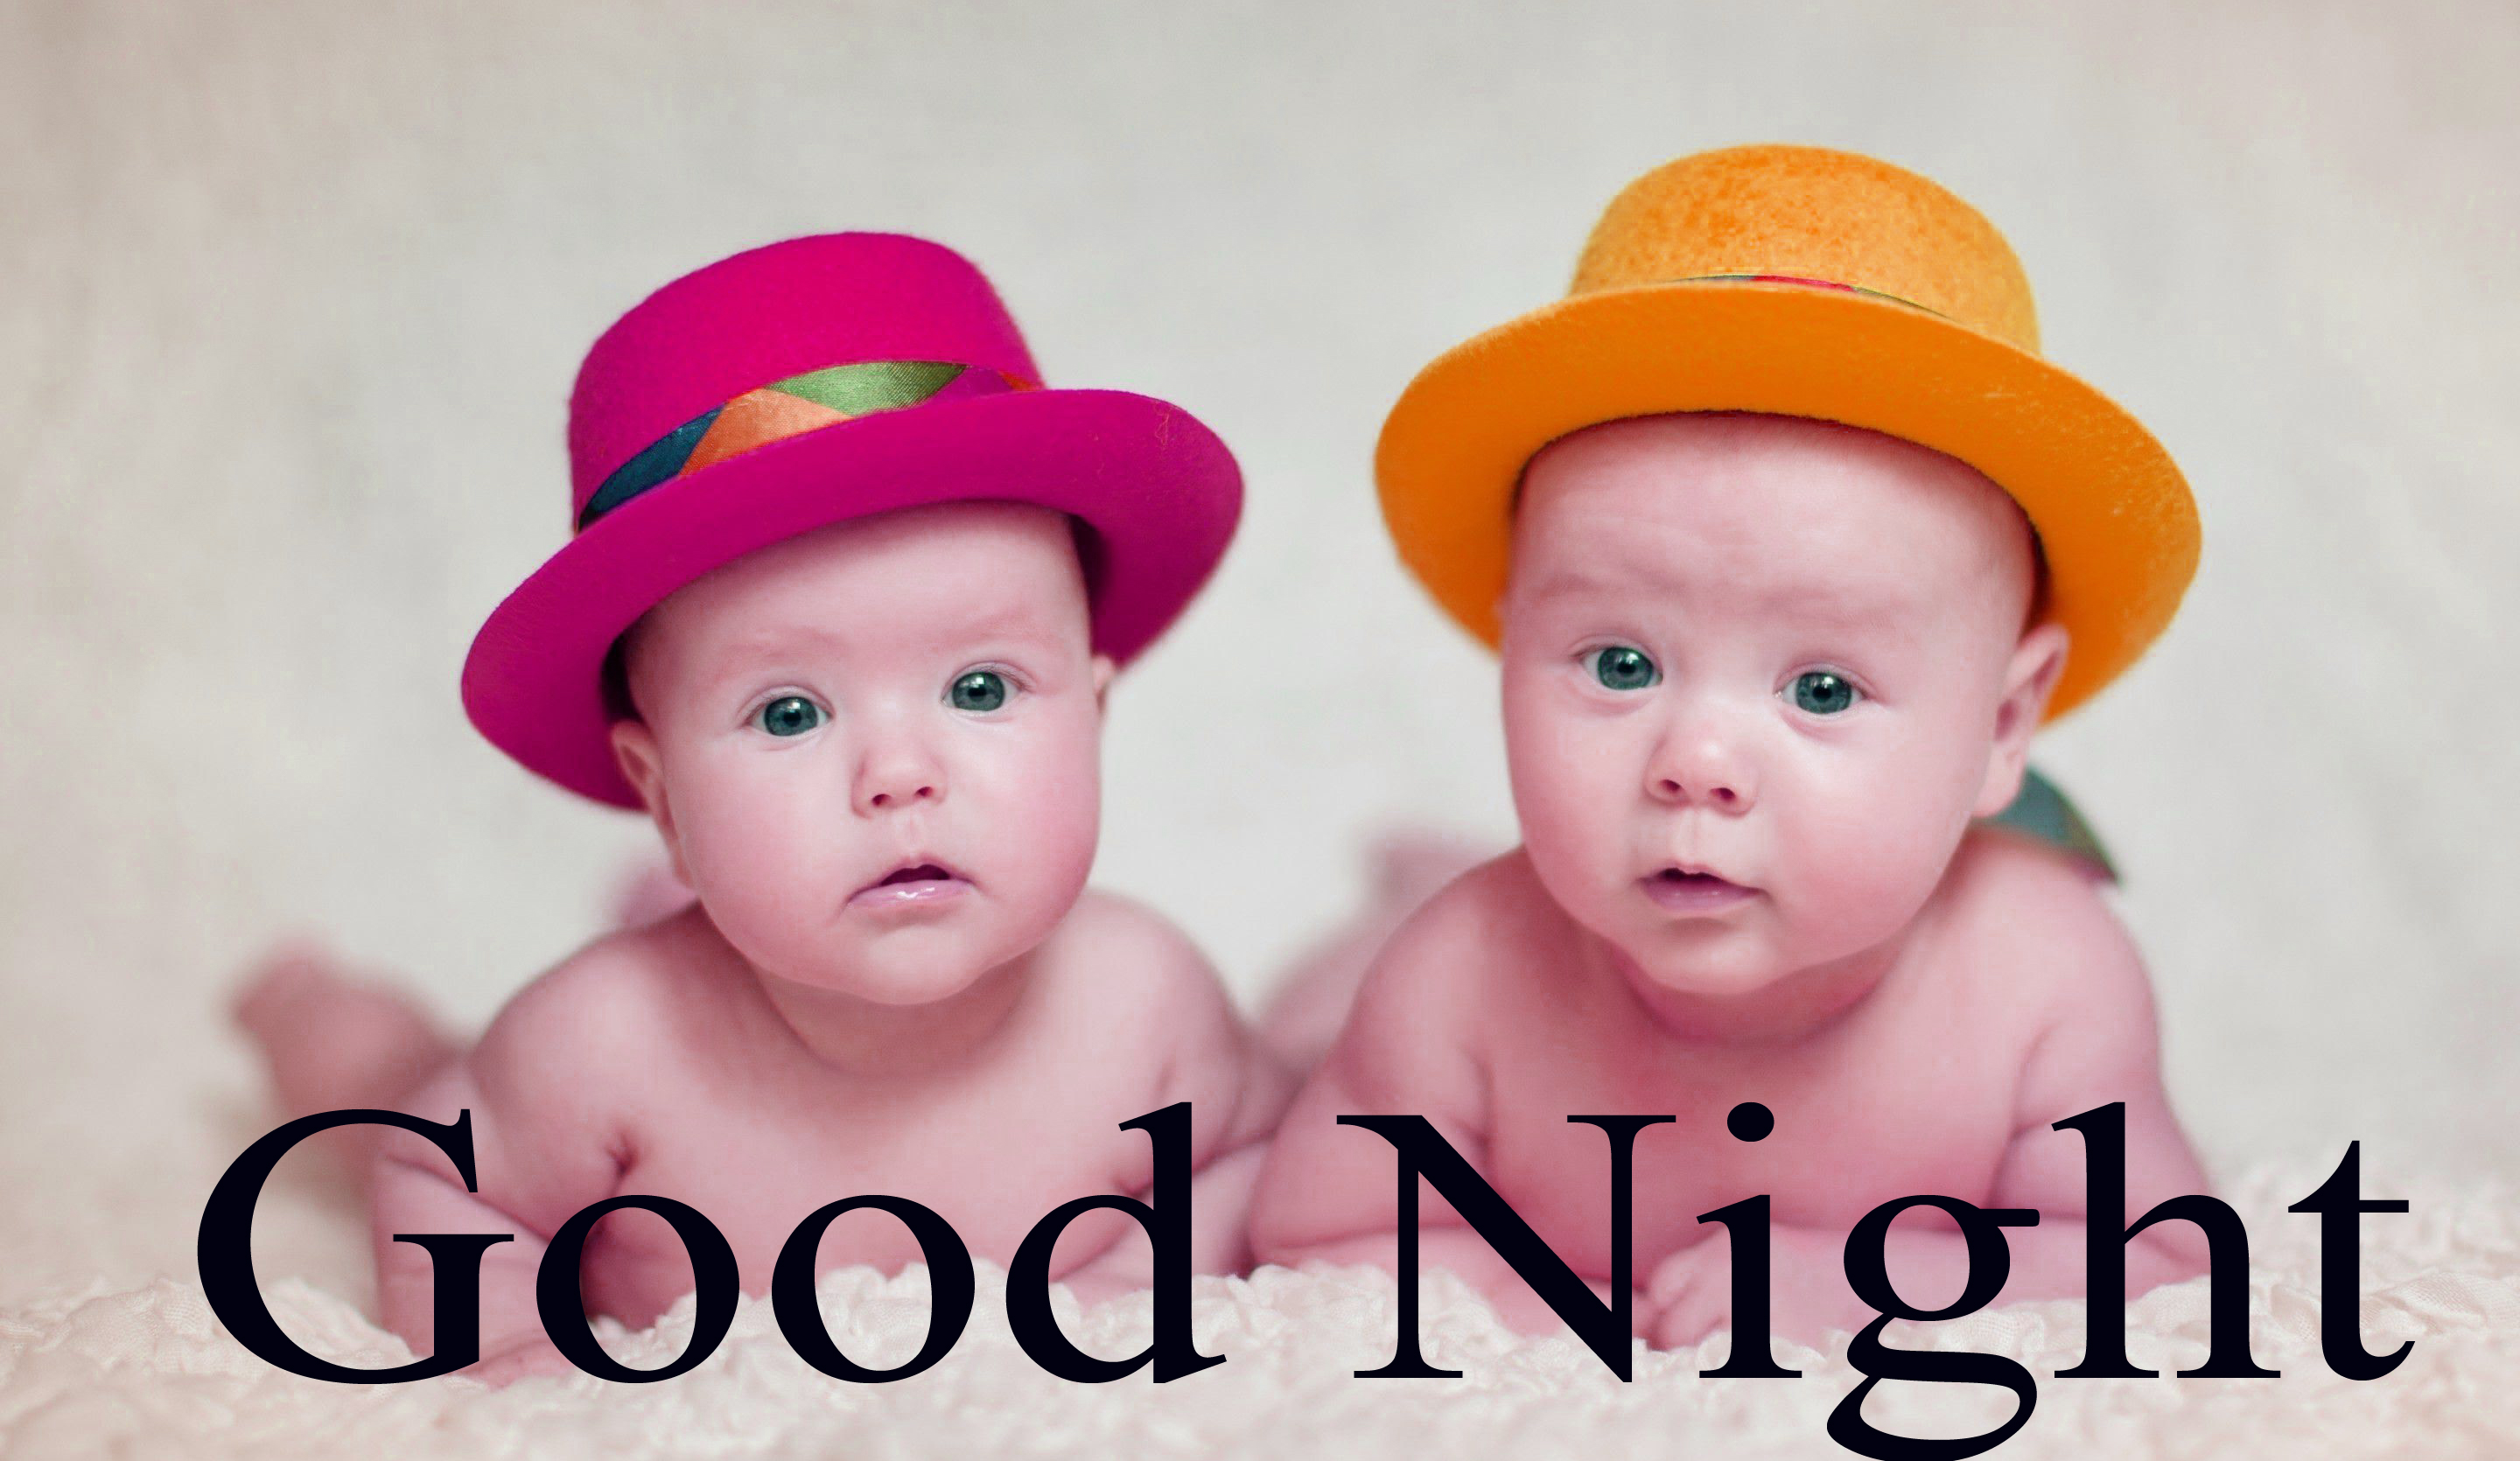 GOOD NIGHT IMAGES WITH CUTE BABY BOYS & GIRLS WALLPAPER PICS FREE